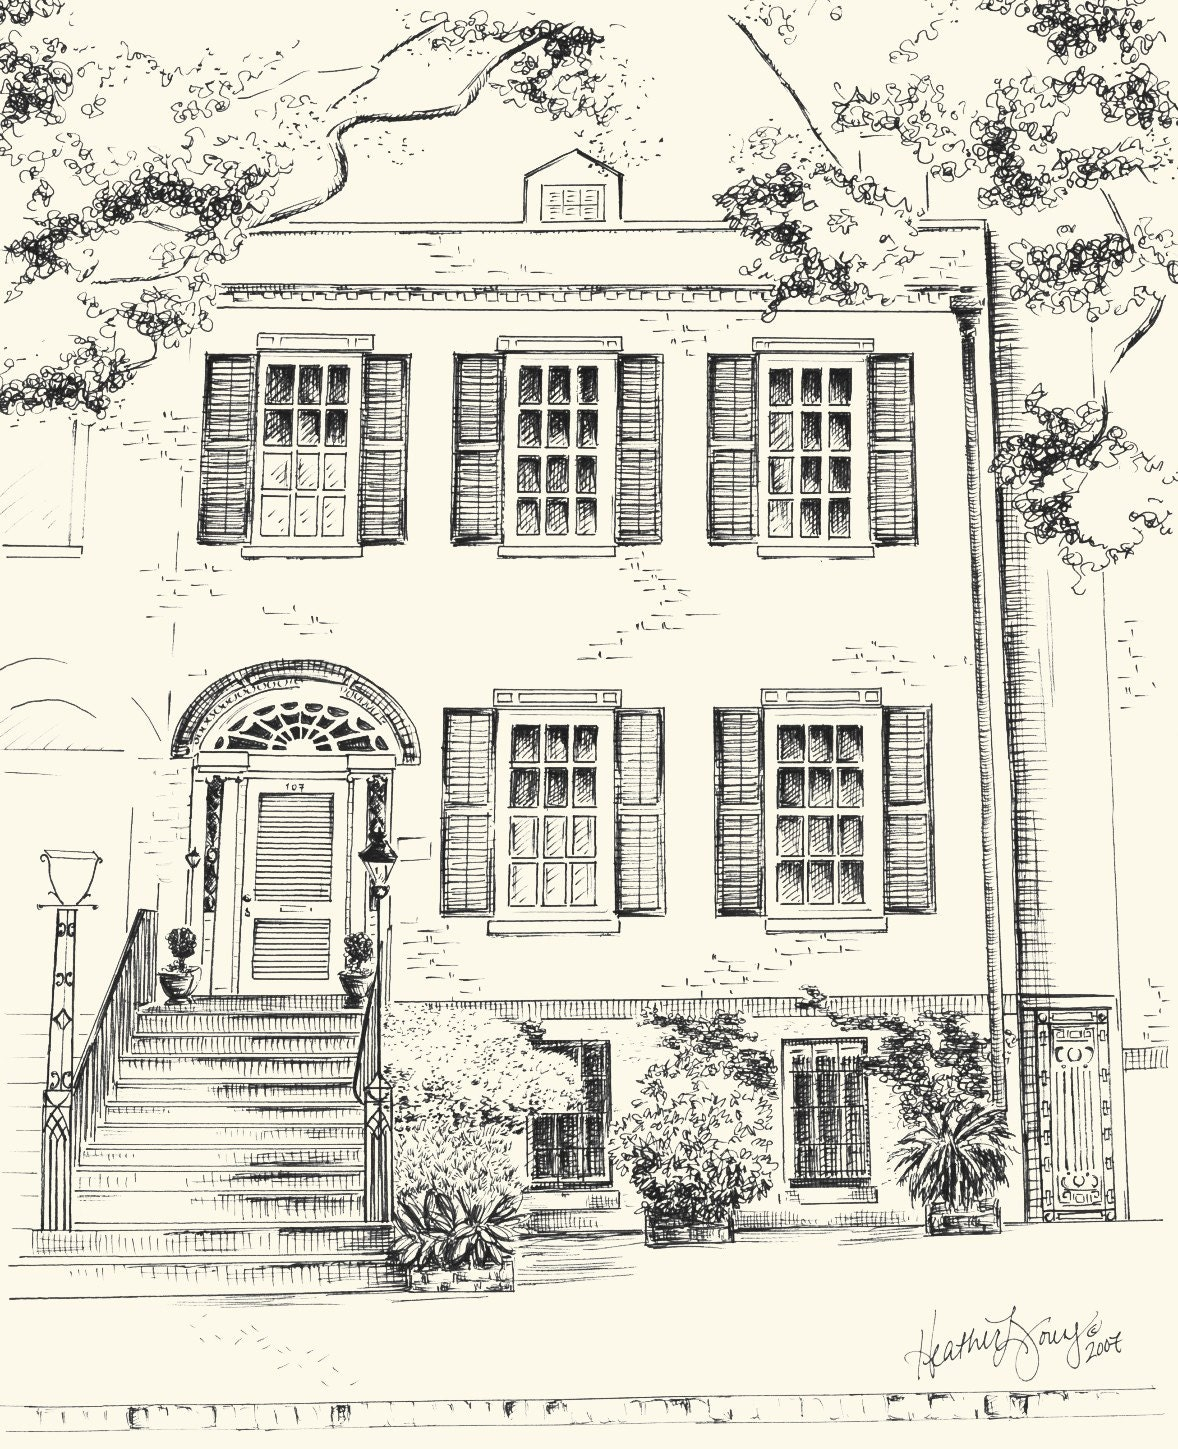 custom pen and ink architectural drawing of your house or home